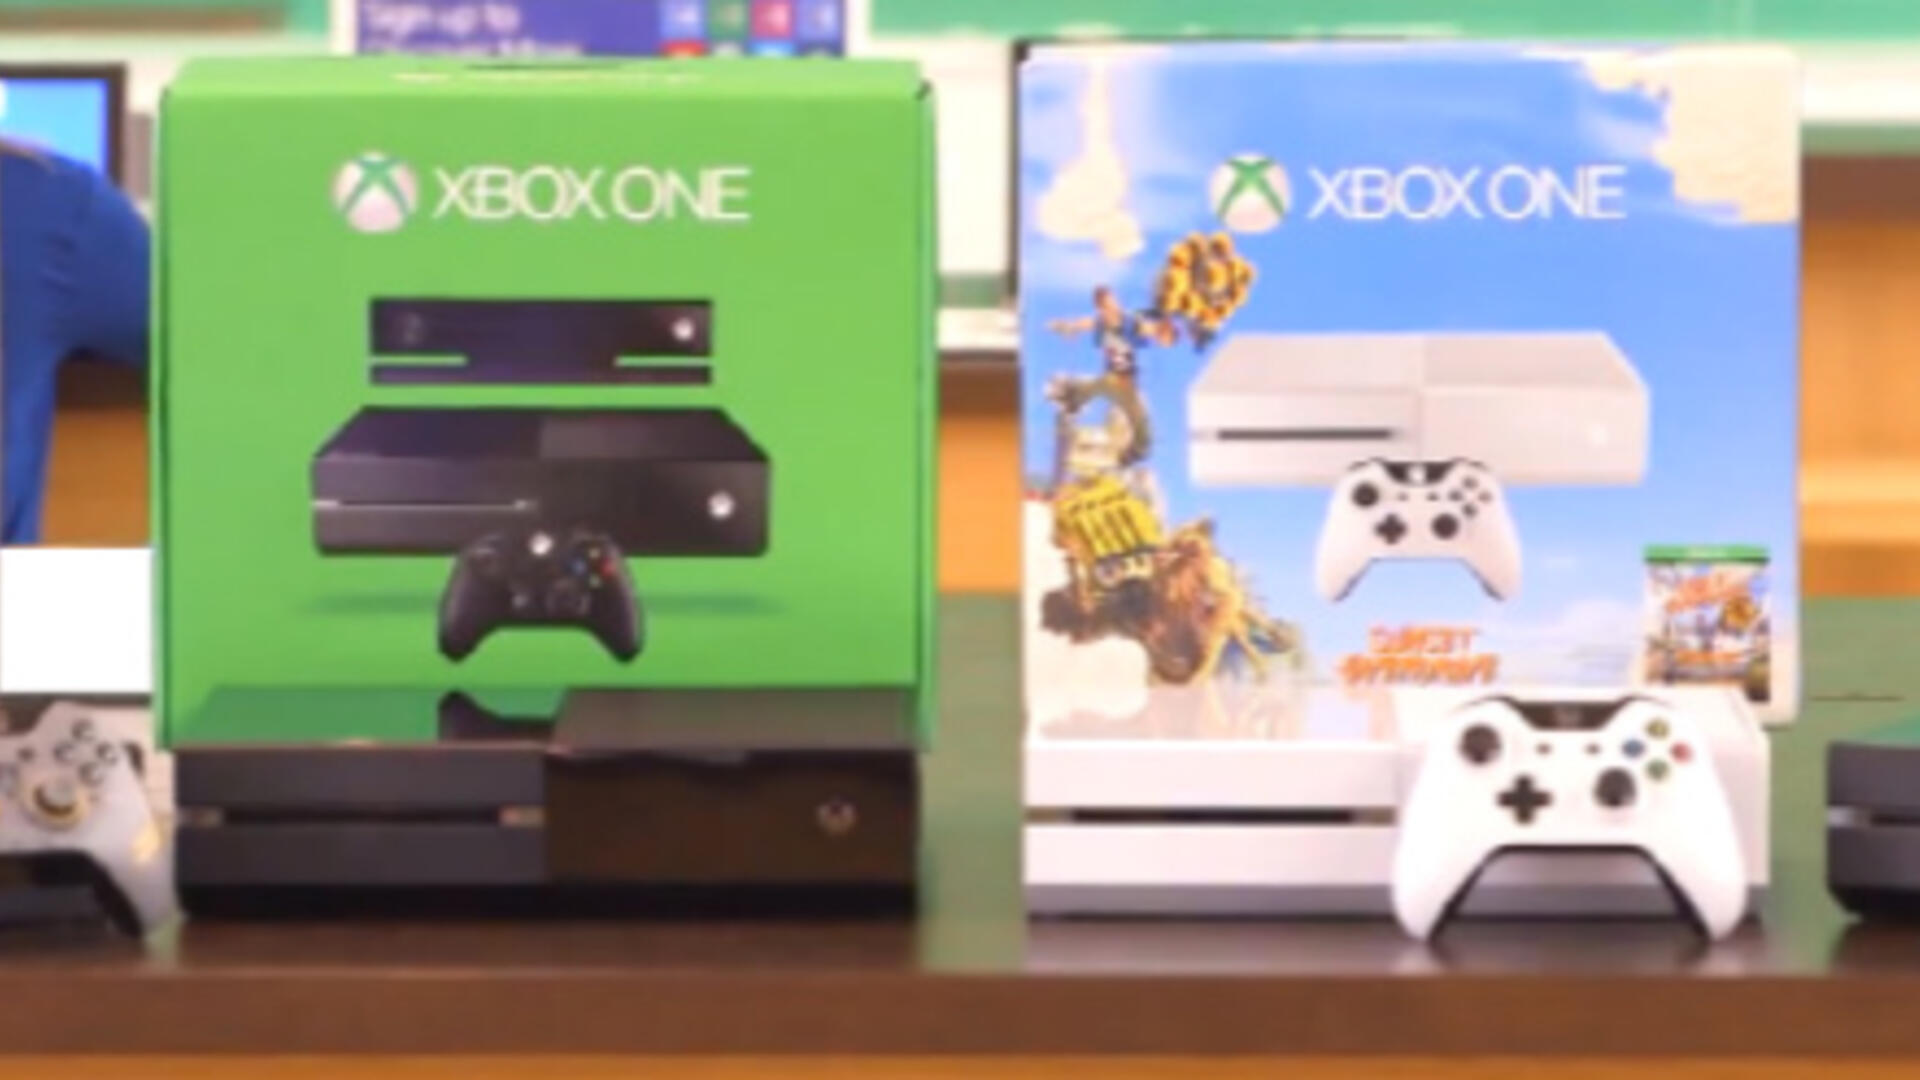 Xbox One For $50 Off: Microsoft Doubles Down With Assassin's Creed and Call of Duty Bundles